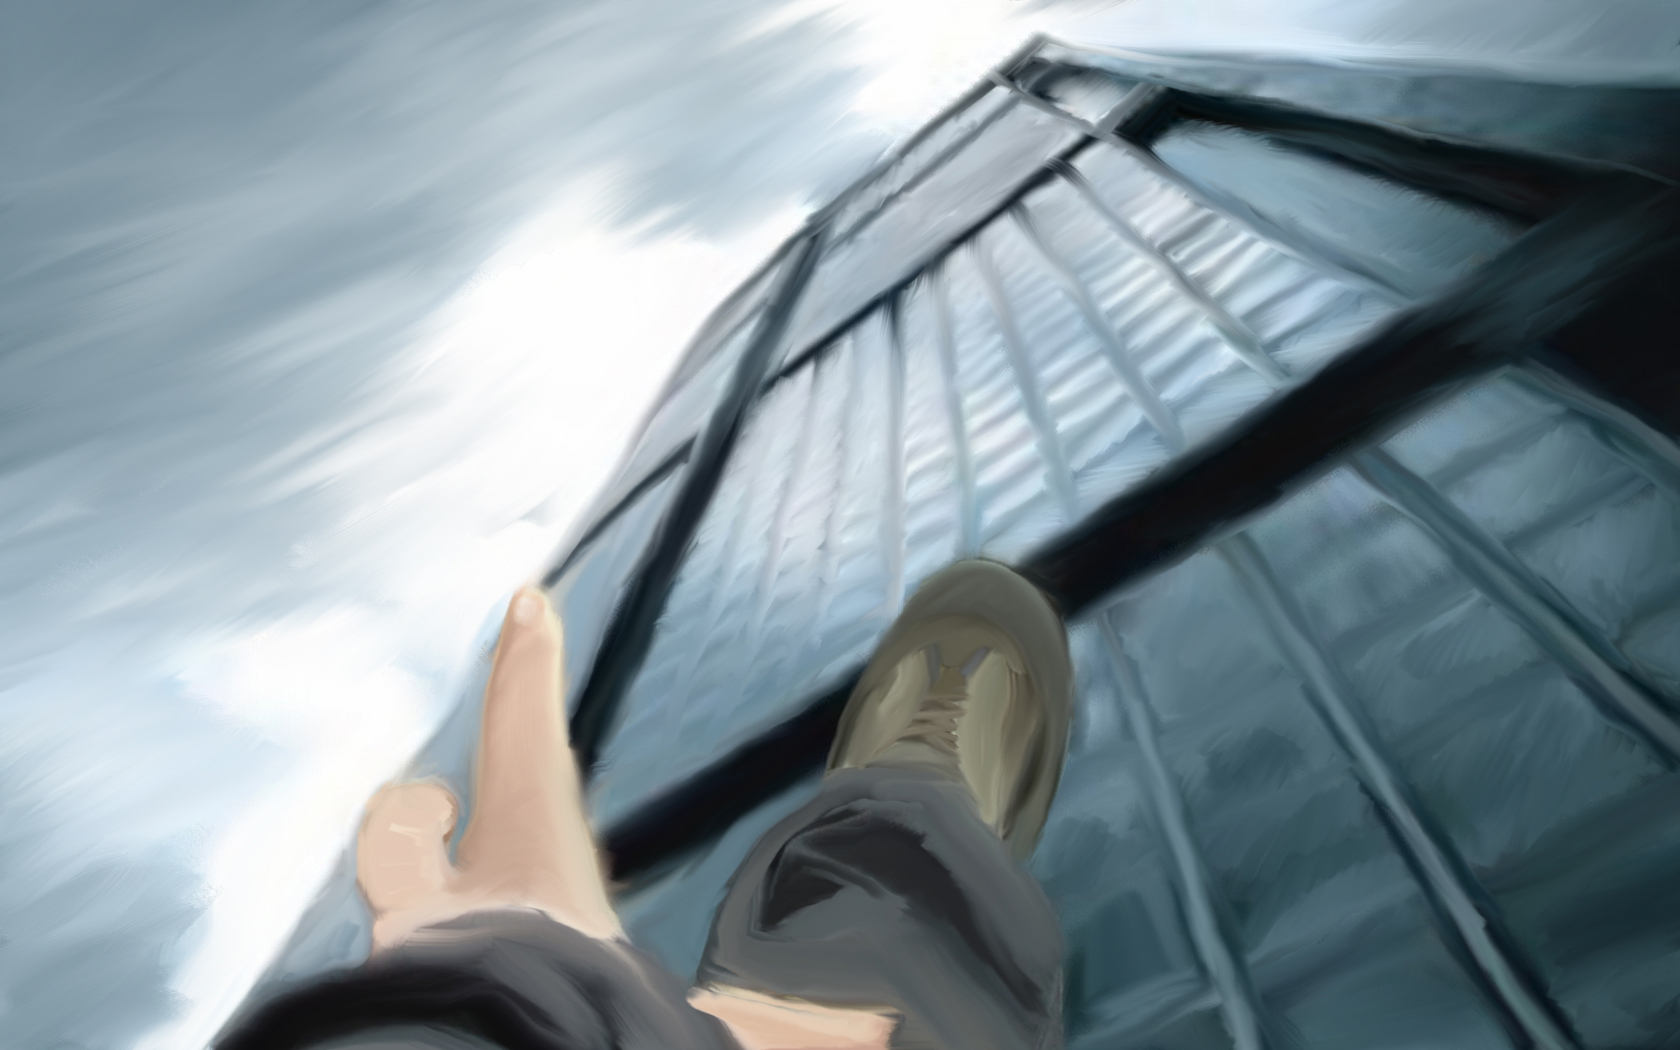 man falling from building HD Wallpaper